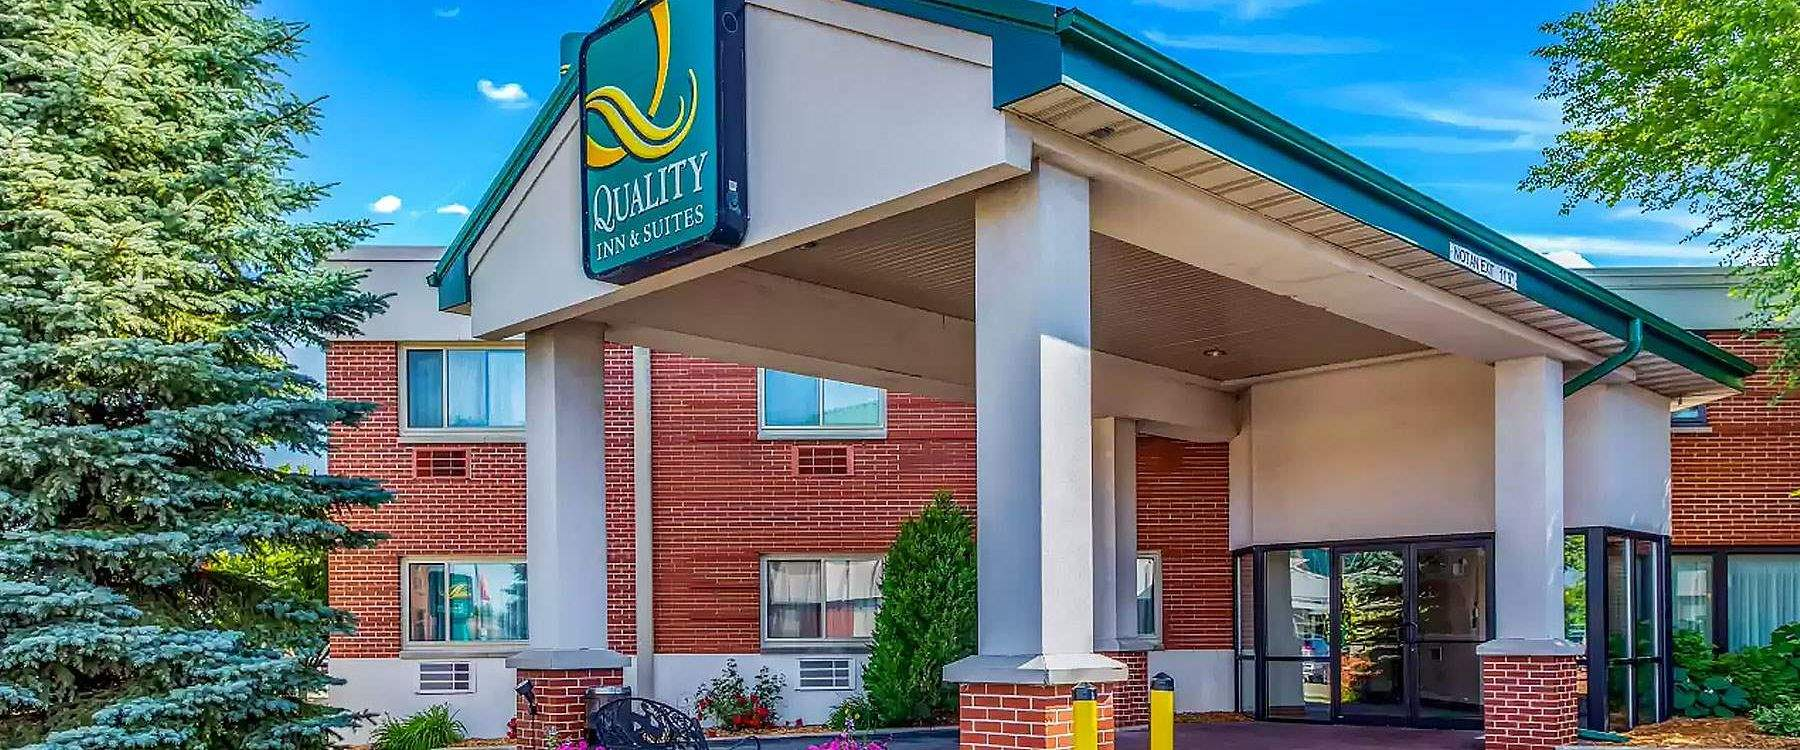 Quality Inn & Suites Downtown at Green Bay